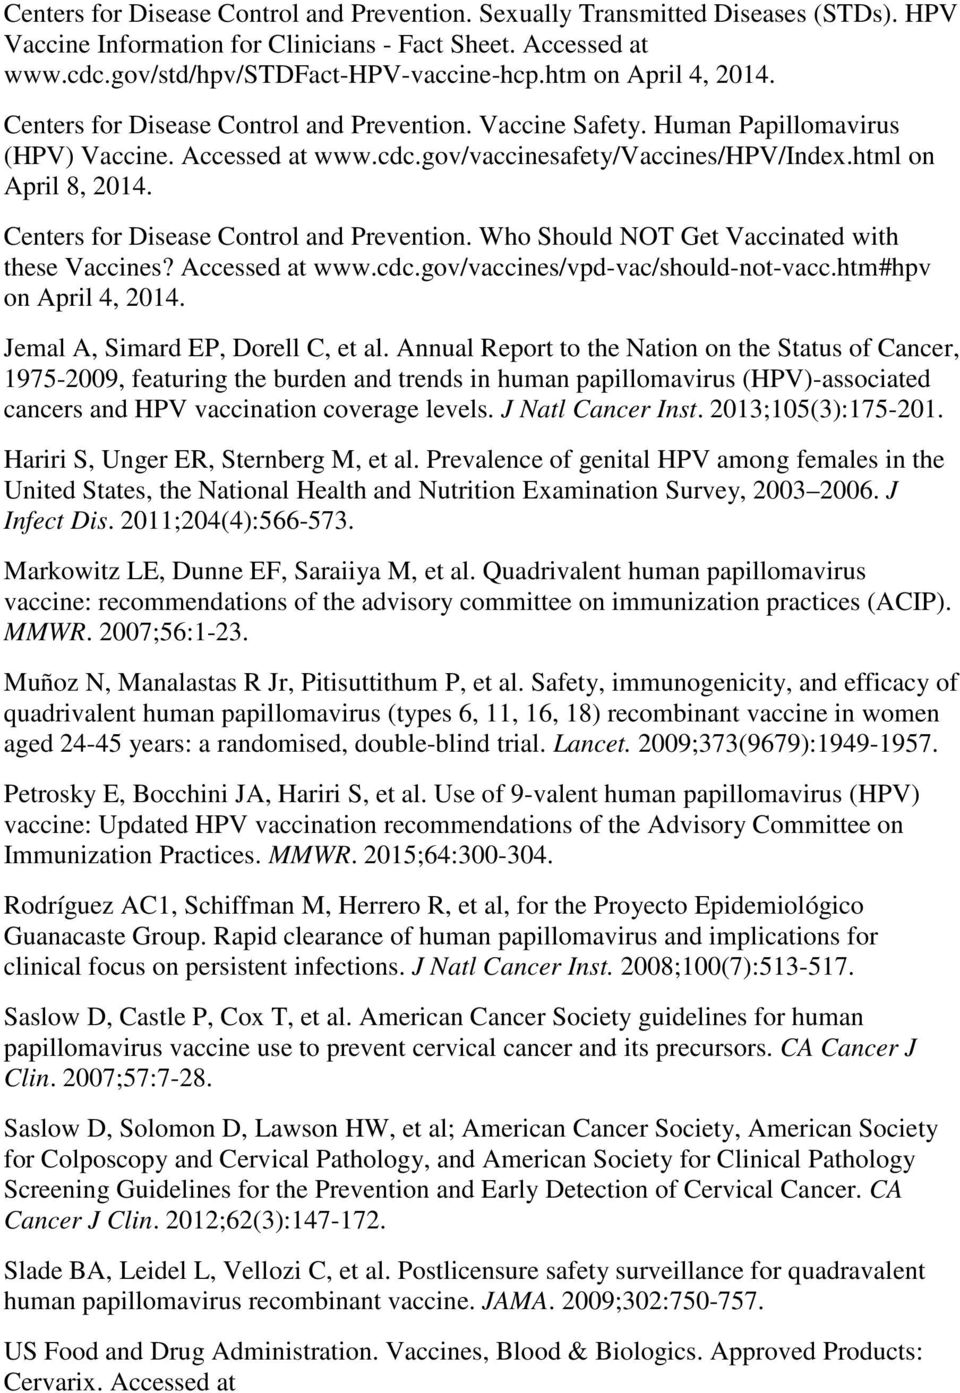 Centers for Disease Control and Prevention. Who Should NOT Get Vaccinated with these Vaccines? Accessed at www.cdc.gov/vaccines/vpd-vac/should-not-vacc.htm#hpv on April 4, 2014.